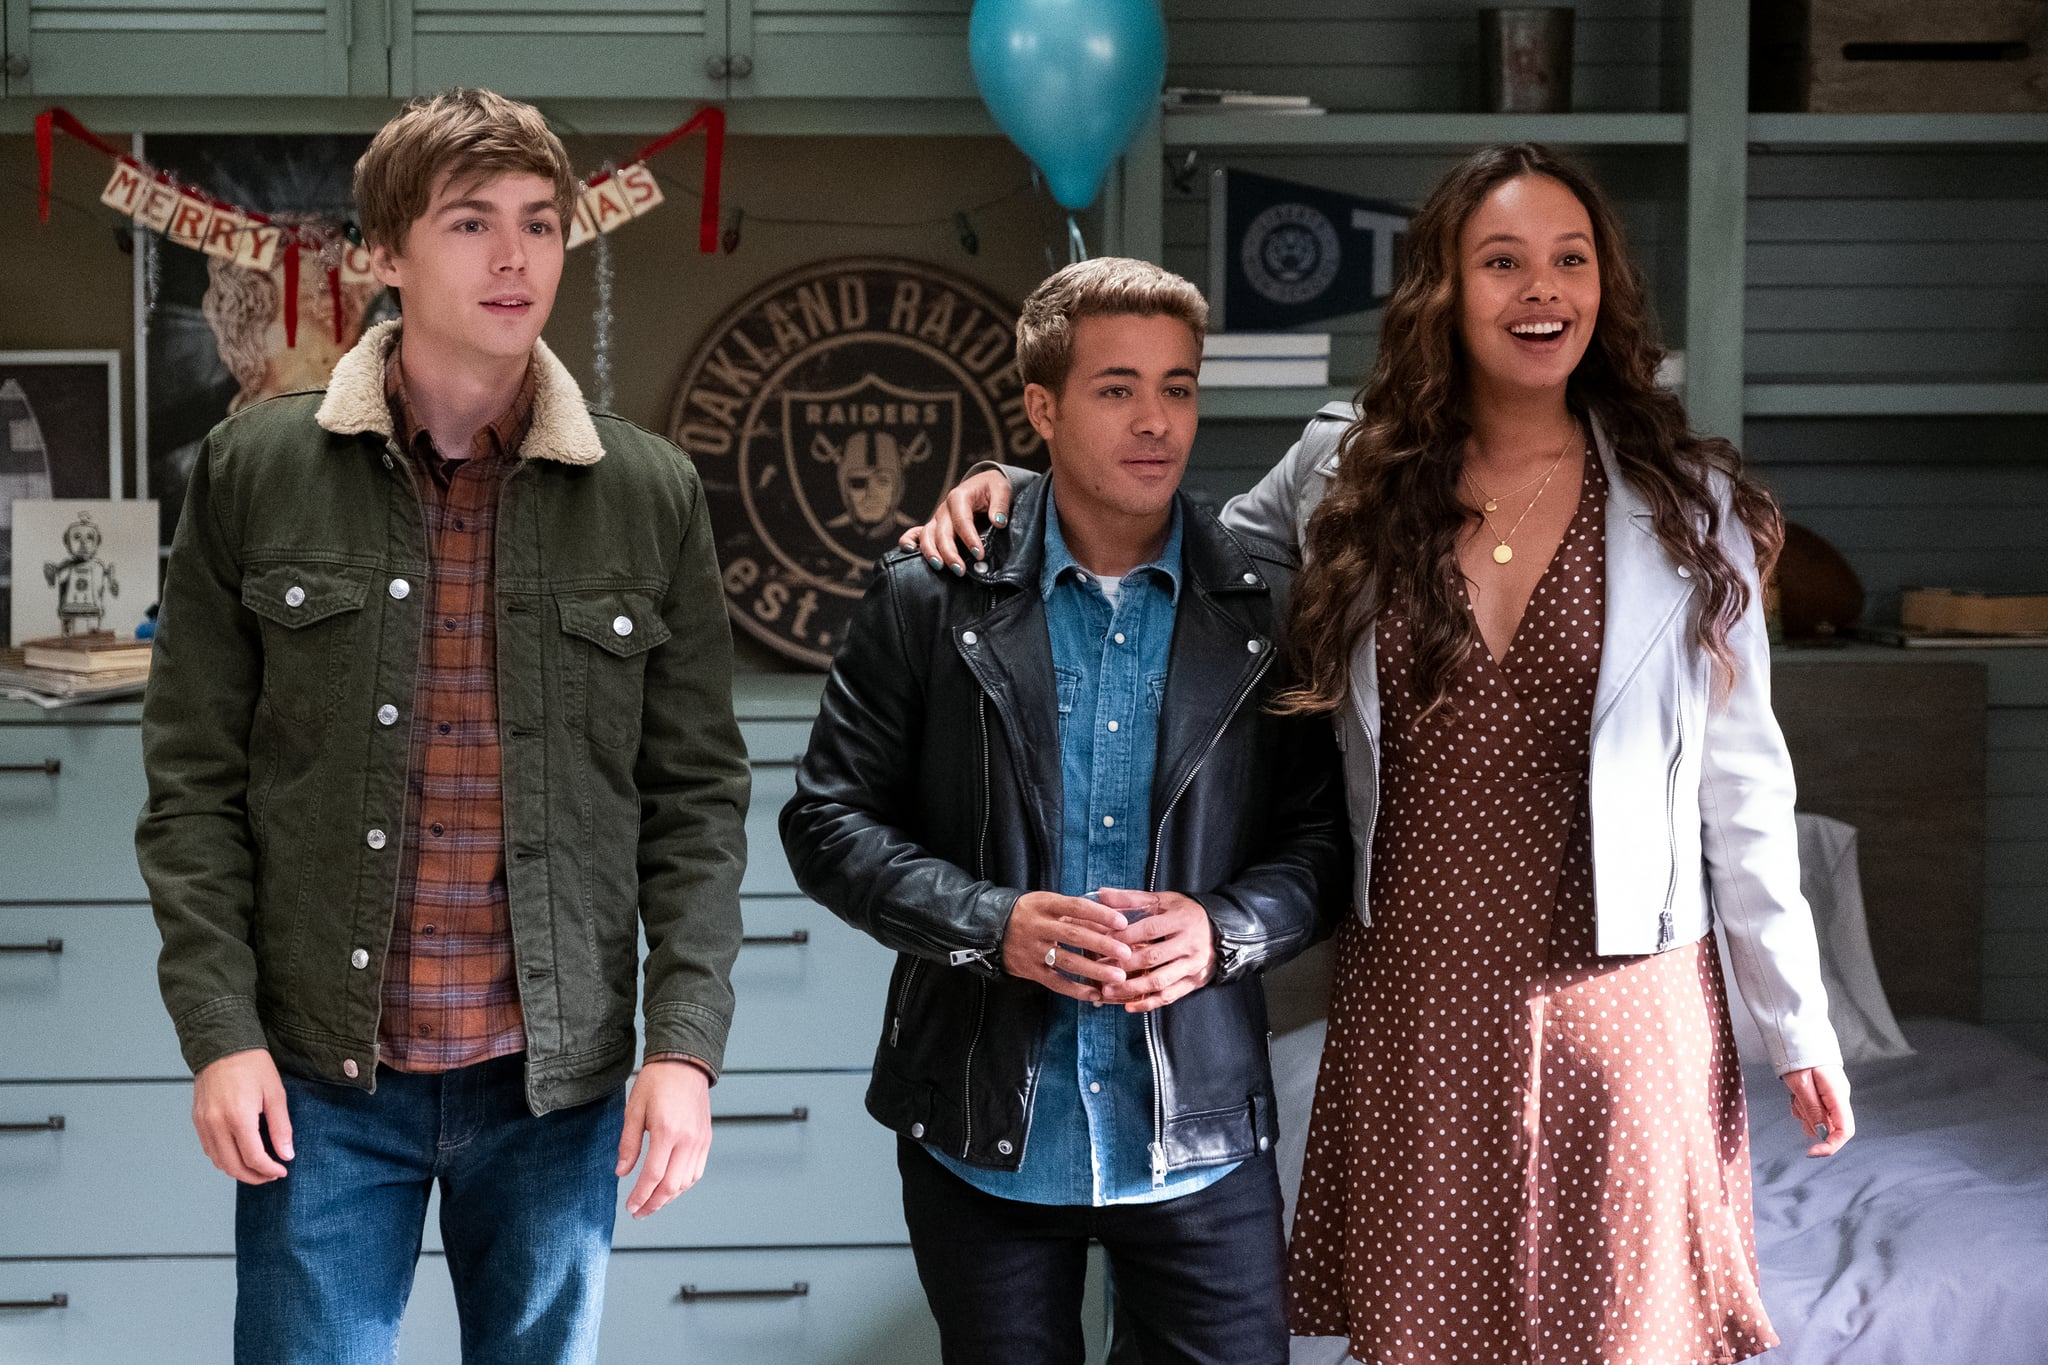 13 REASONS WHY  (L TO R) MILES HEIZER as ALEX STANDALL, CHRISTIAN NAVARRO as TONY PADILLA and ALISHA BOE as JESSICA DAVIS in episode 401 of 13 REASONS WHY  Cr. DAVID MOIR/NETFLIX  2020